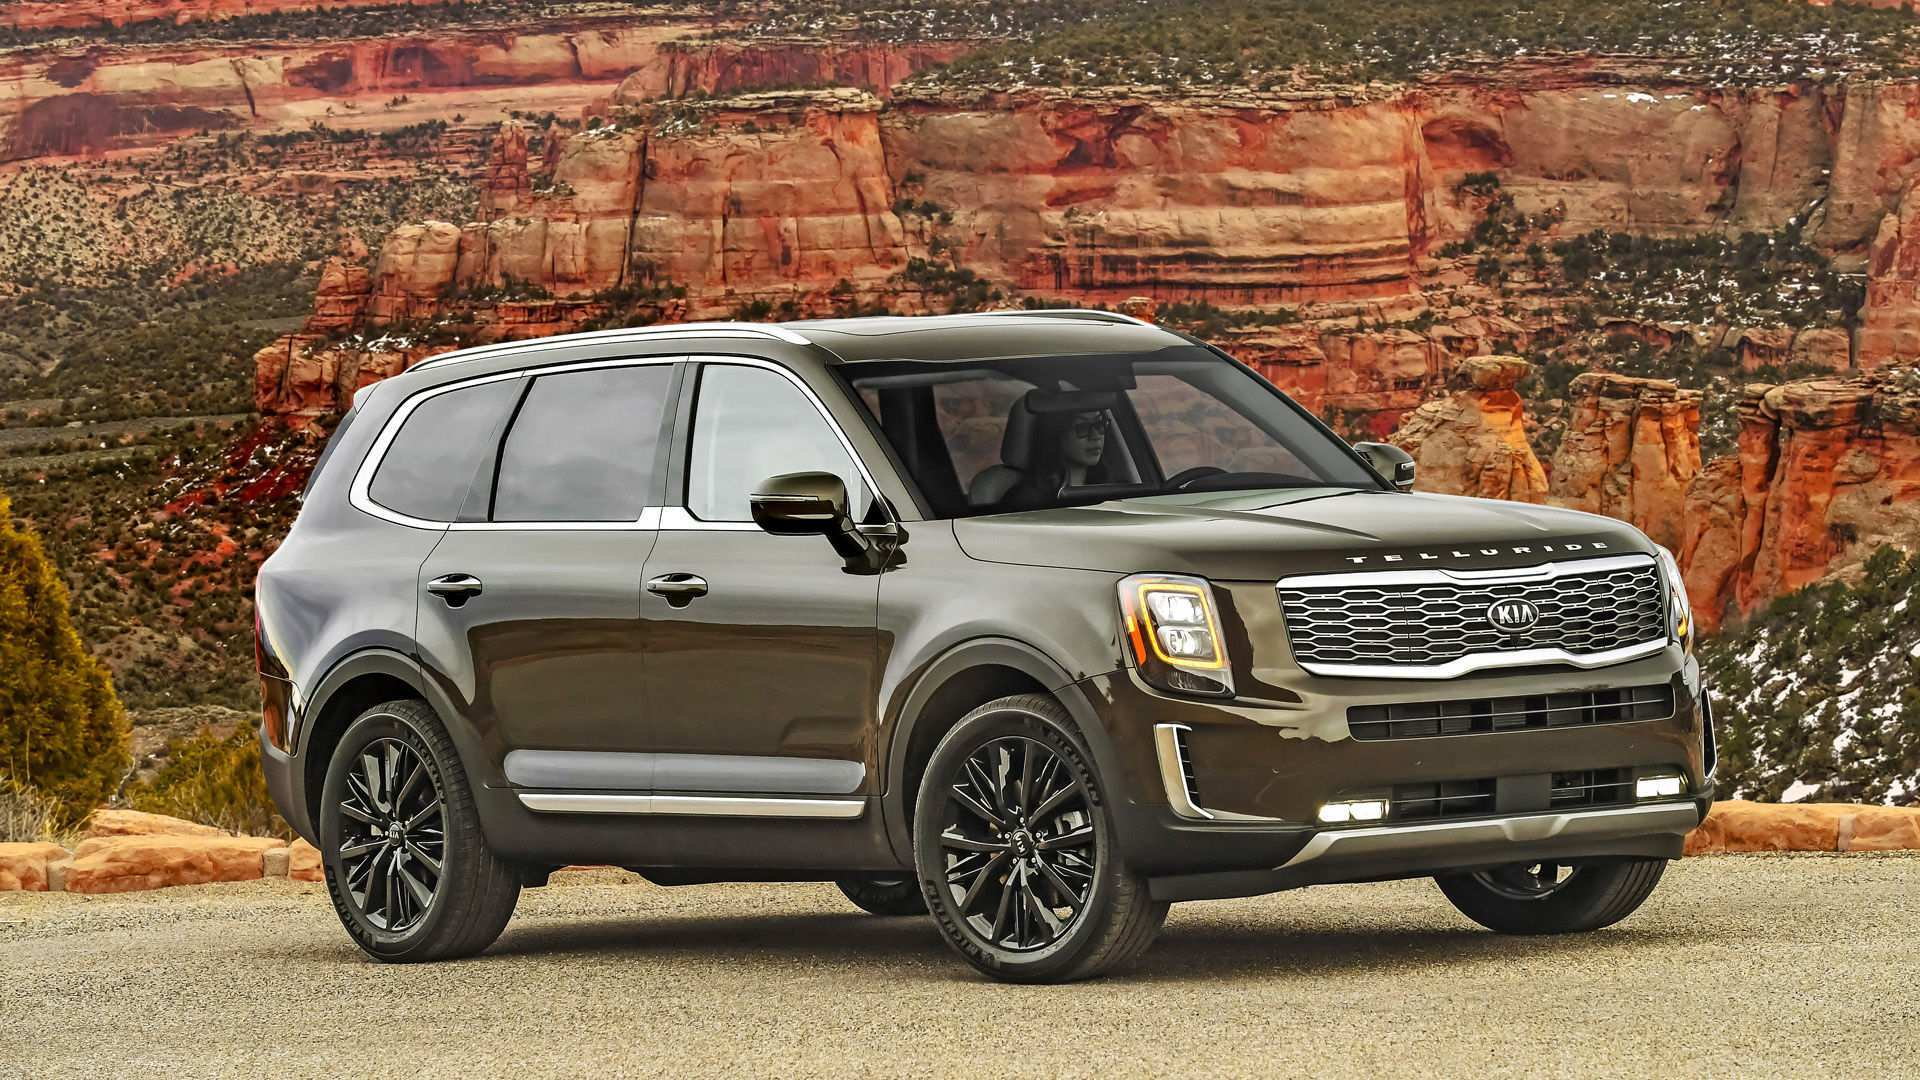 37 All New How Much Is The 2020 Kia Telluride Specs and Review for How Much Is The 2020 Kia Telluride